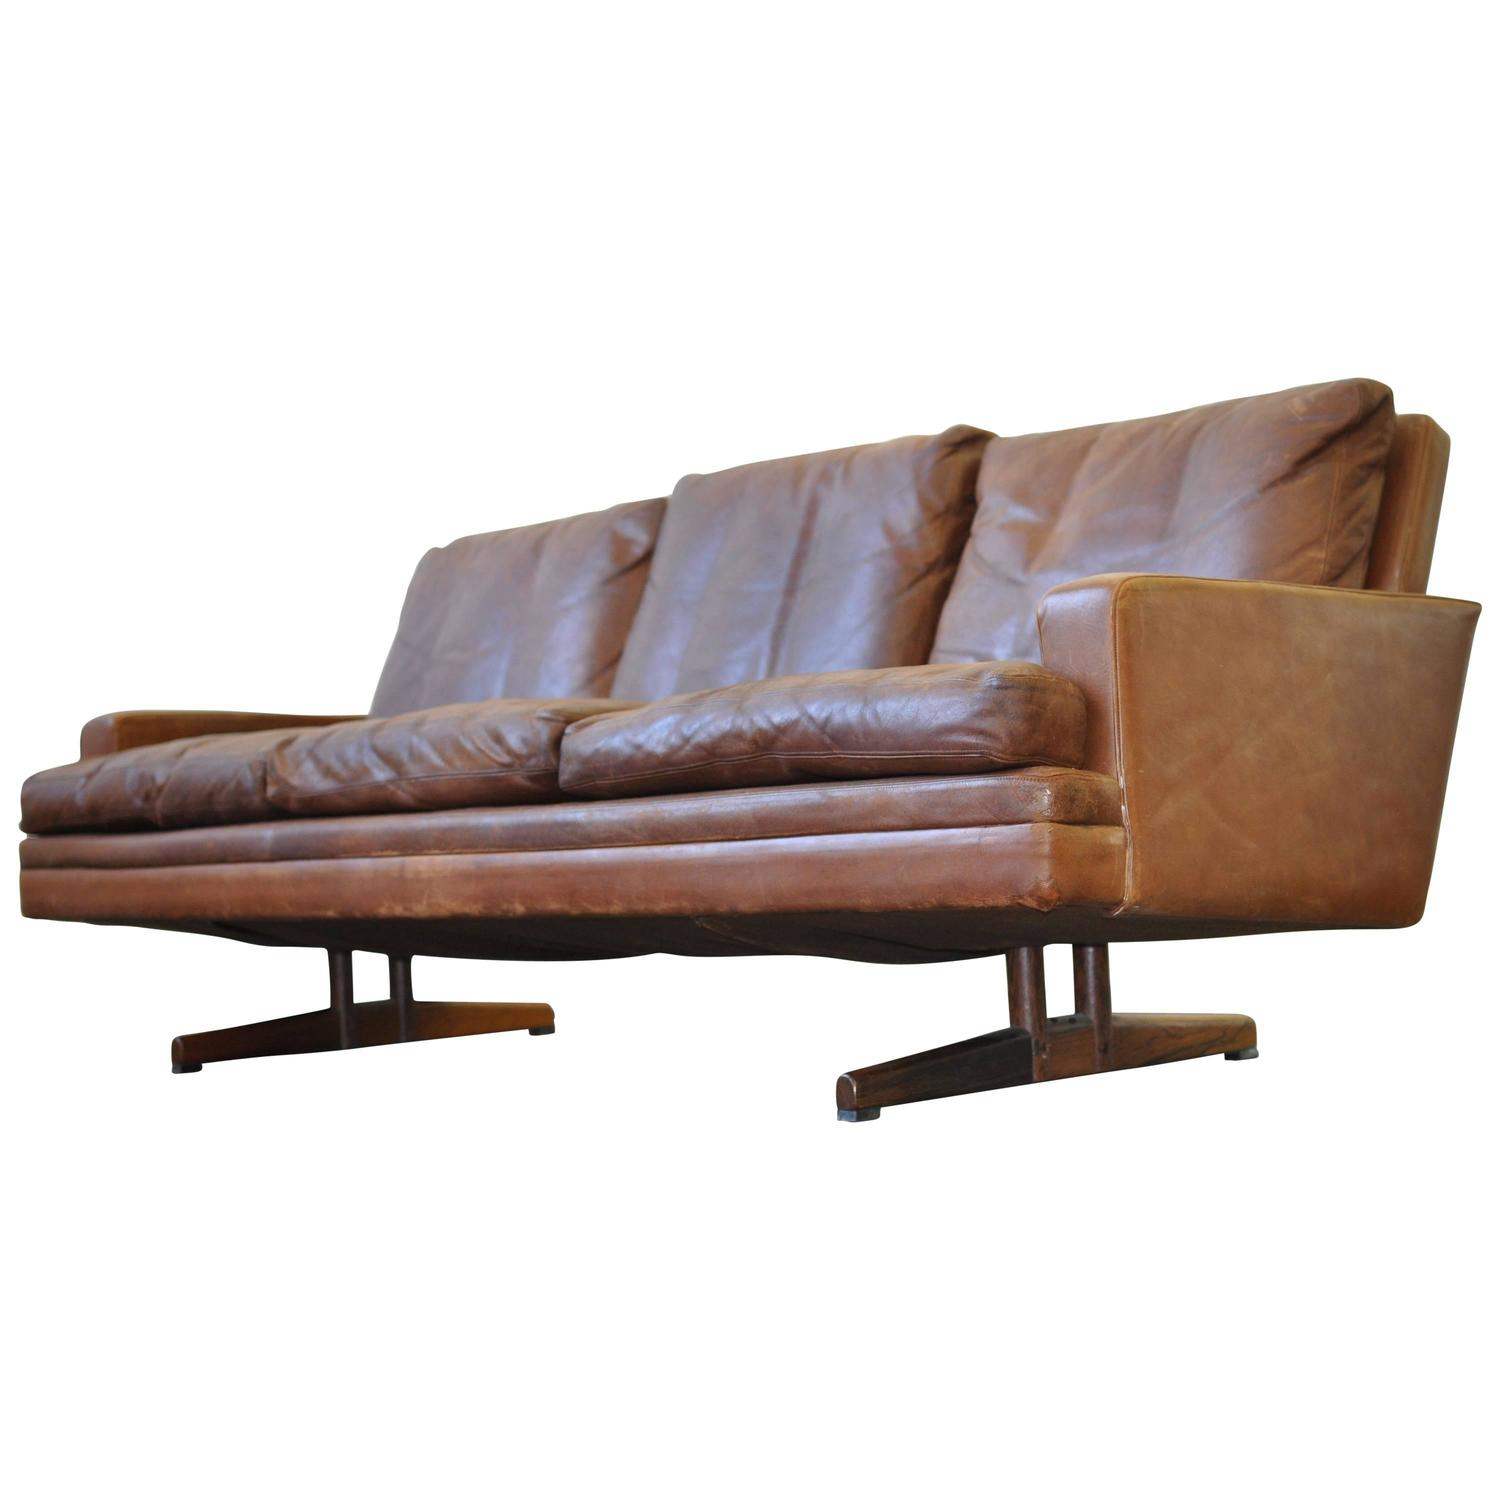 Fredrik Kayser Leather and Rosewood Sofa For Sale at 1stdibs